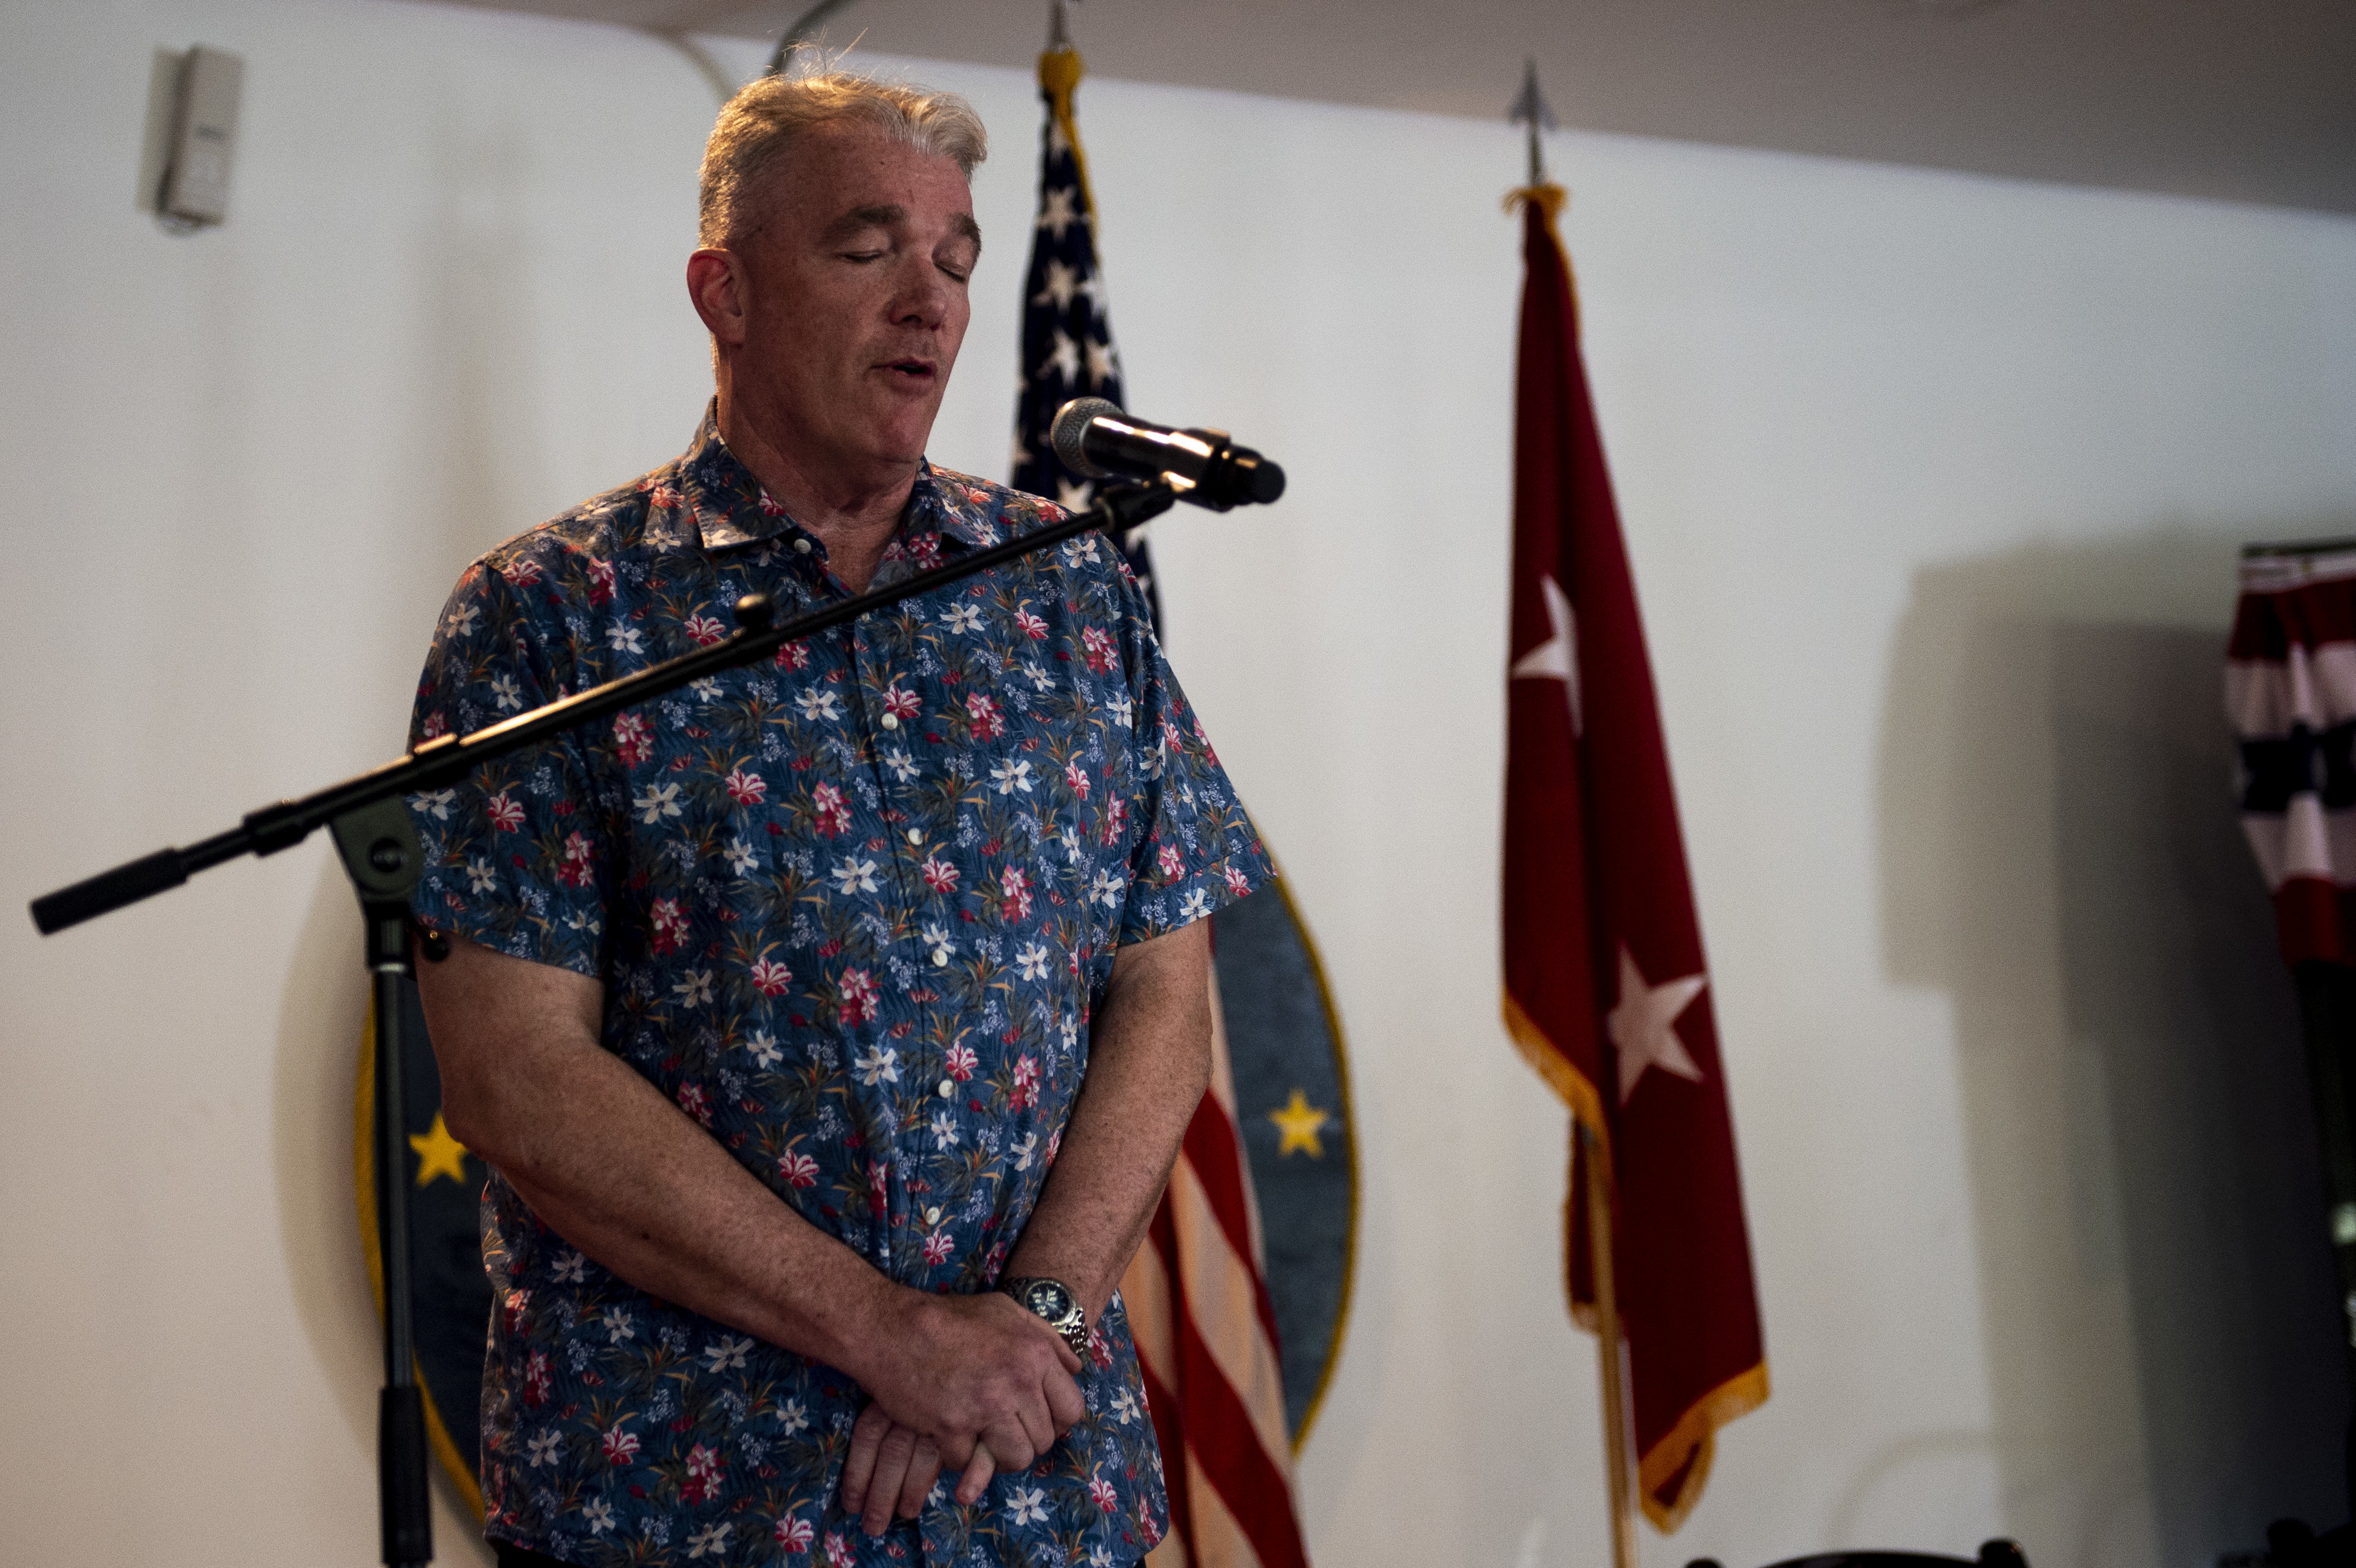 U.S. Navy Capt. Robert H. Carpenter, command chaplain for Combined Joint Task Force-Horn of Africa, leads prayer before lunch during a barbecue on Camp Lemonnier, Djibouti, Oct. 20, 2018. CJTF-HOA leadershp hosted the barbecue after an award ceremony that honored CJTF-HOA's three Service Members of the Quarter. (U.S. Air Force photo by Senior Airman Scott Jackson)